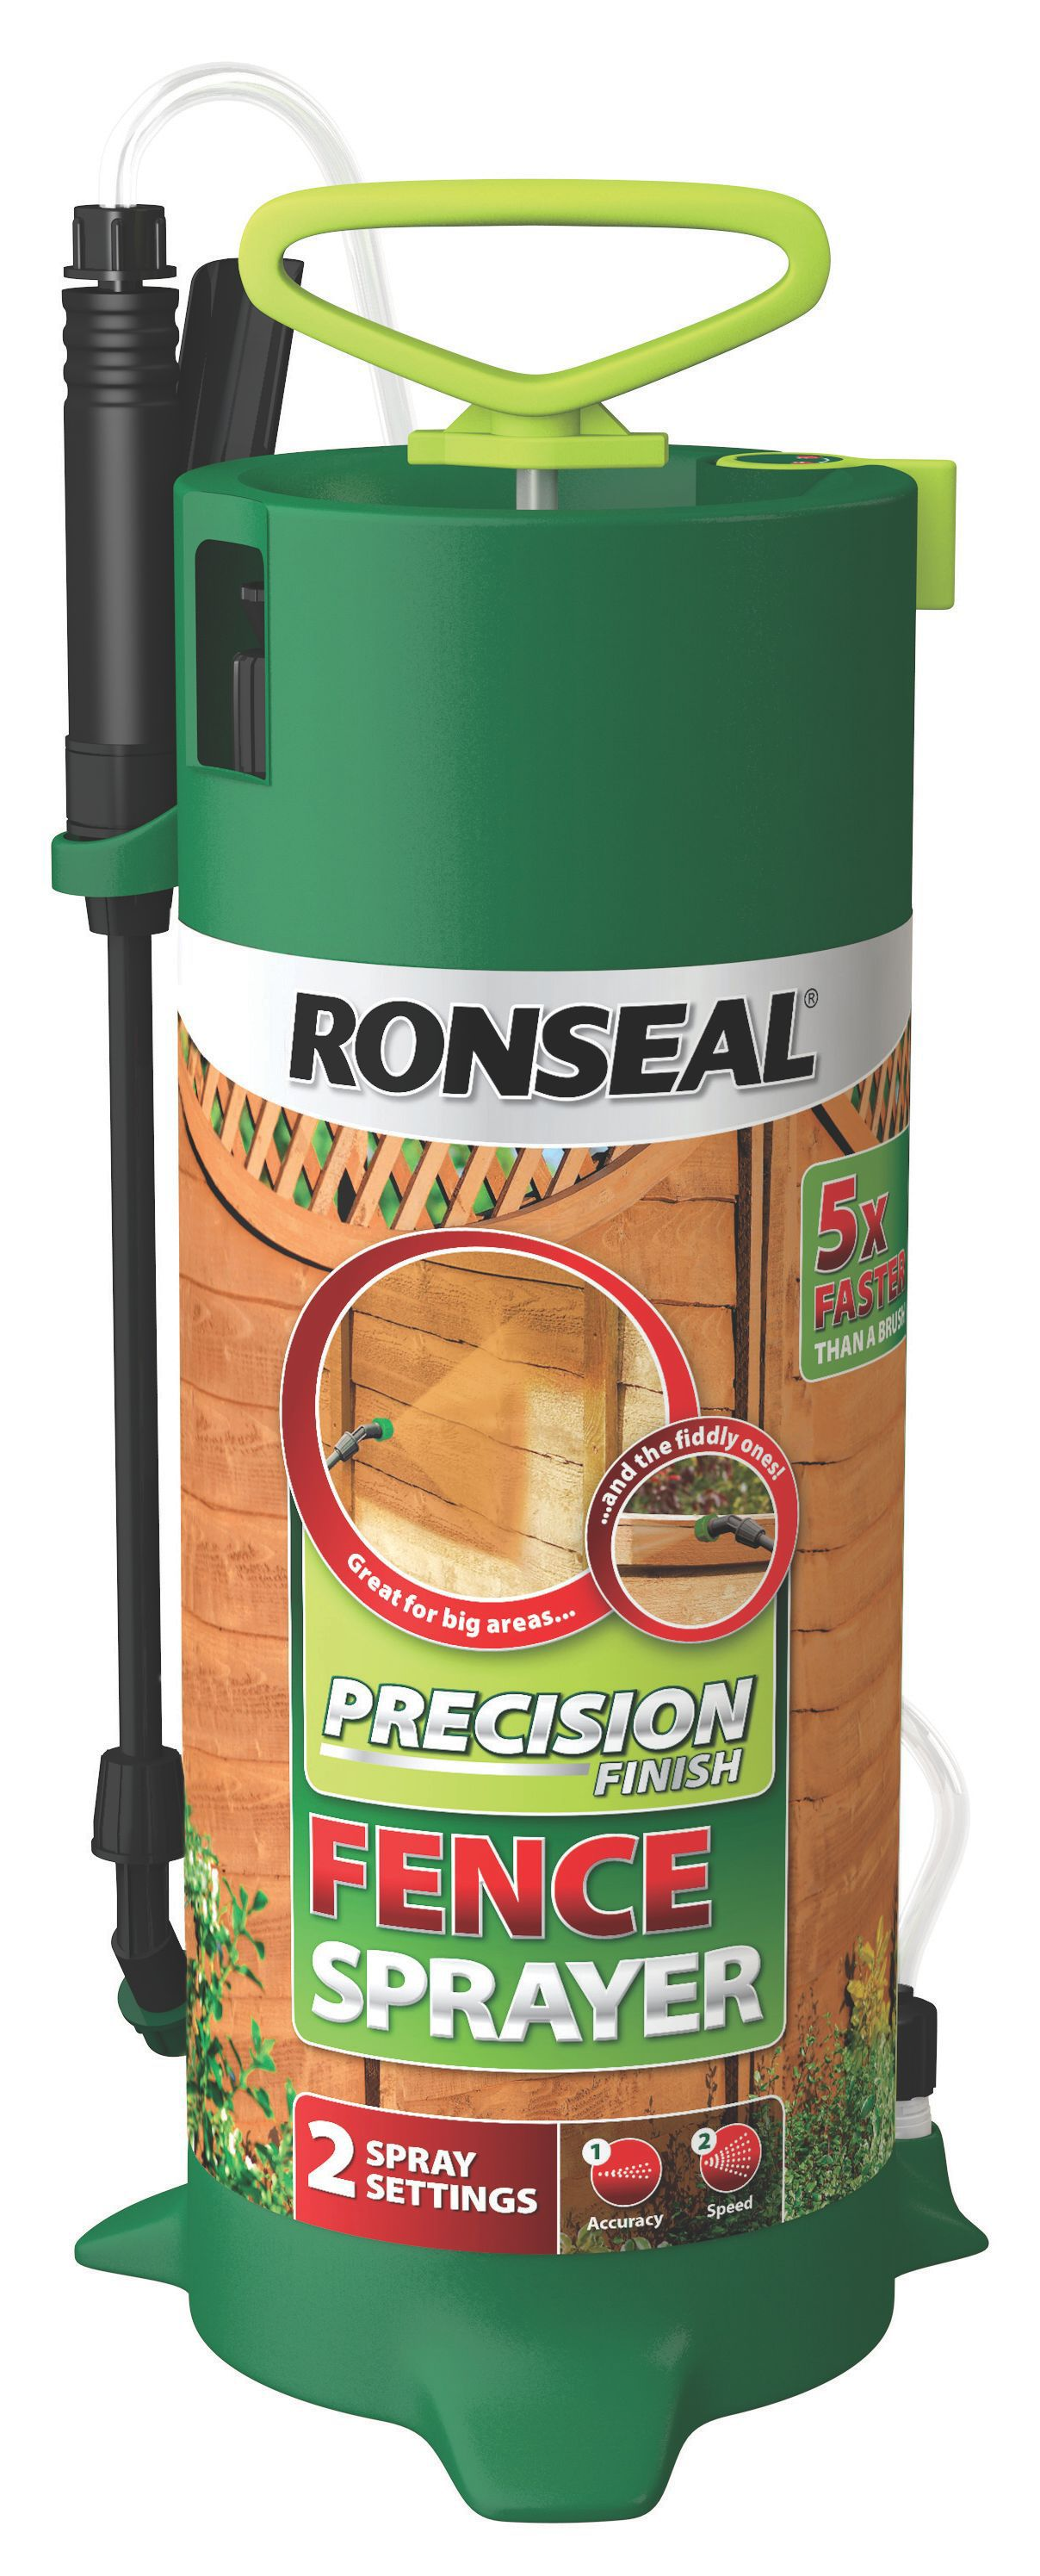 Ronseal Sprayers Fence Amp Shed Sprayer 37646 Departments